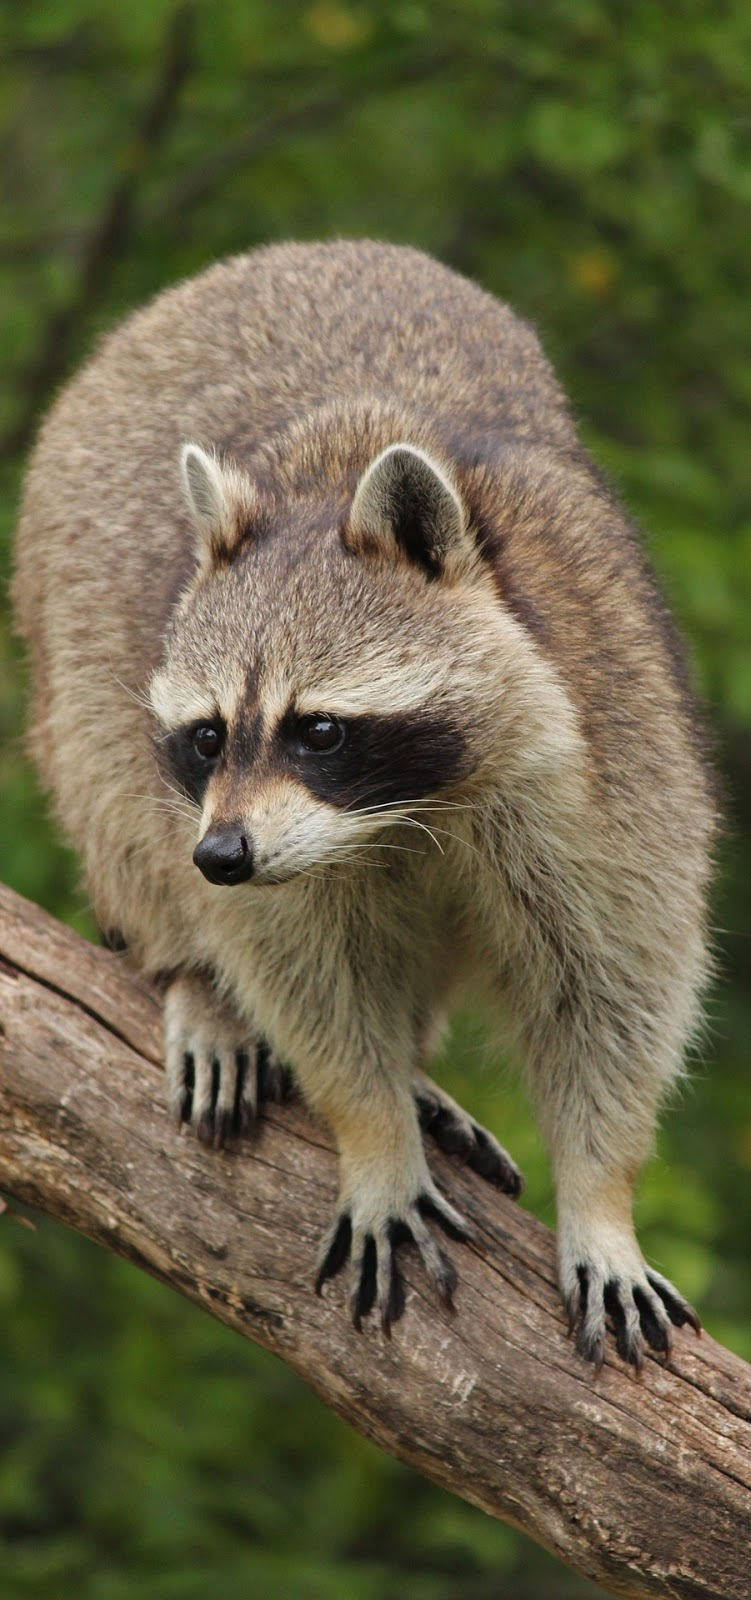 Raccoon on tree branch.